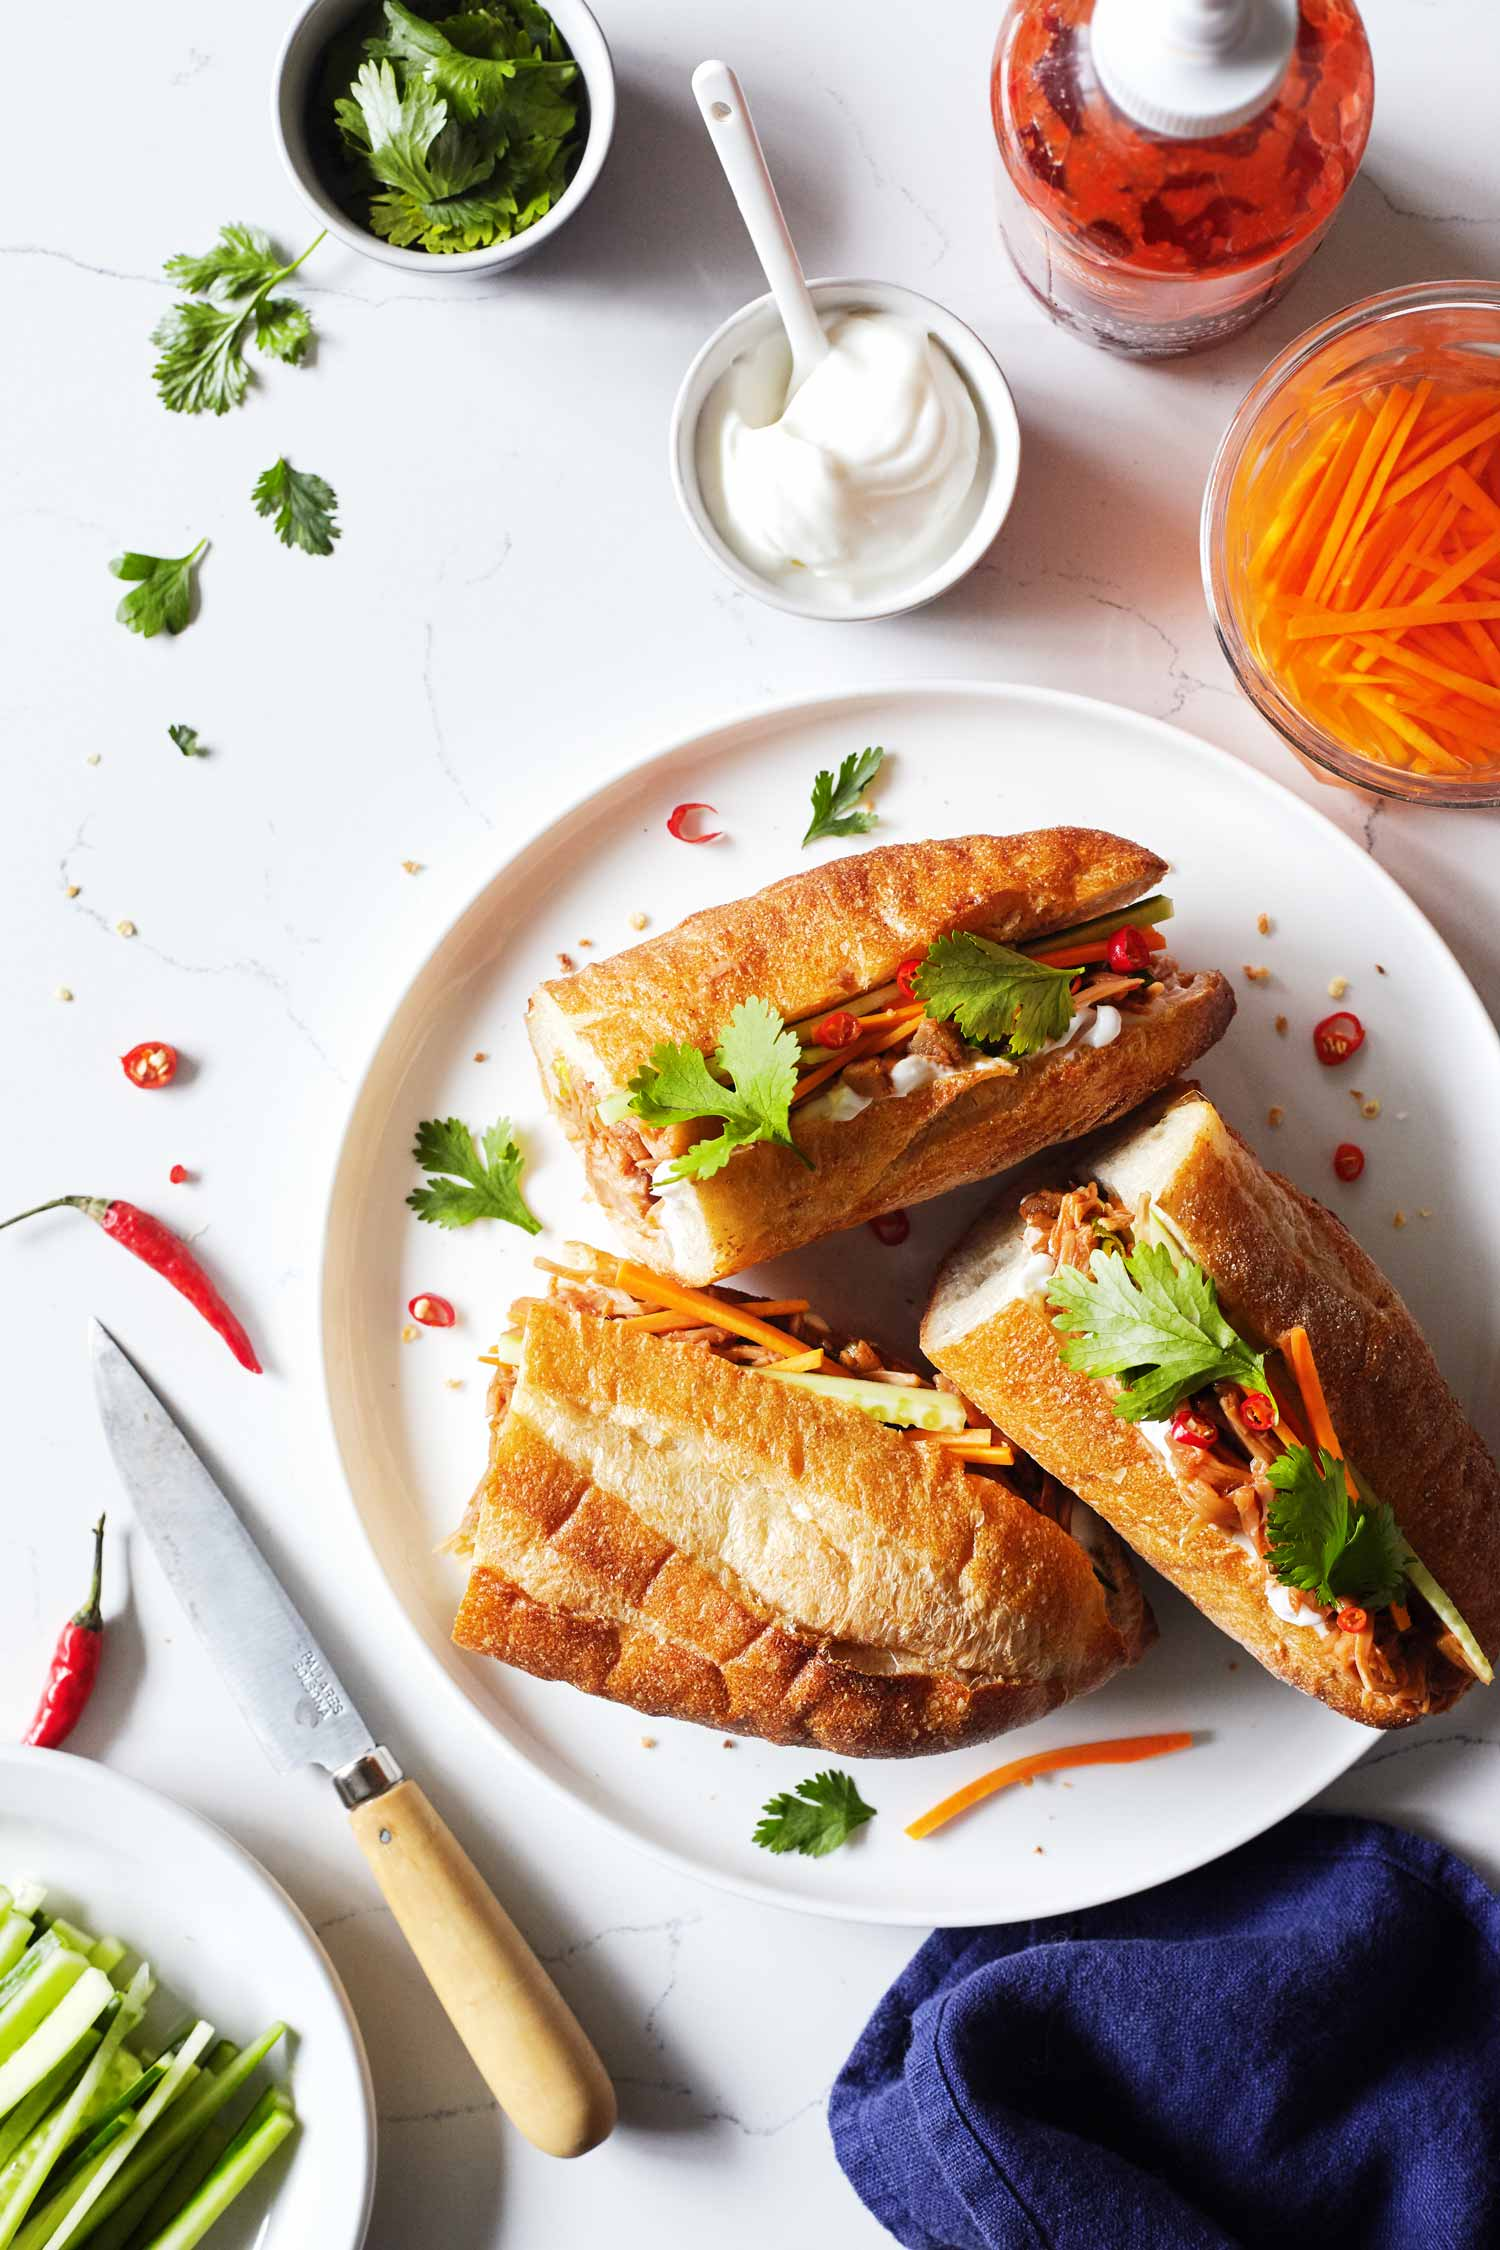 Pulled-Jackfruit-Banh-Mi-Sandwiches-Evergreen-Kitchen-1.jpg